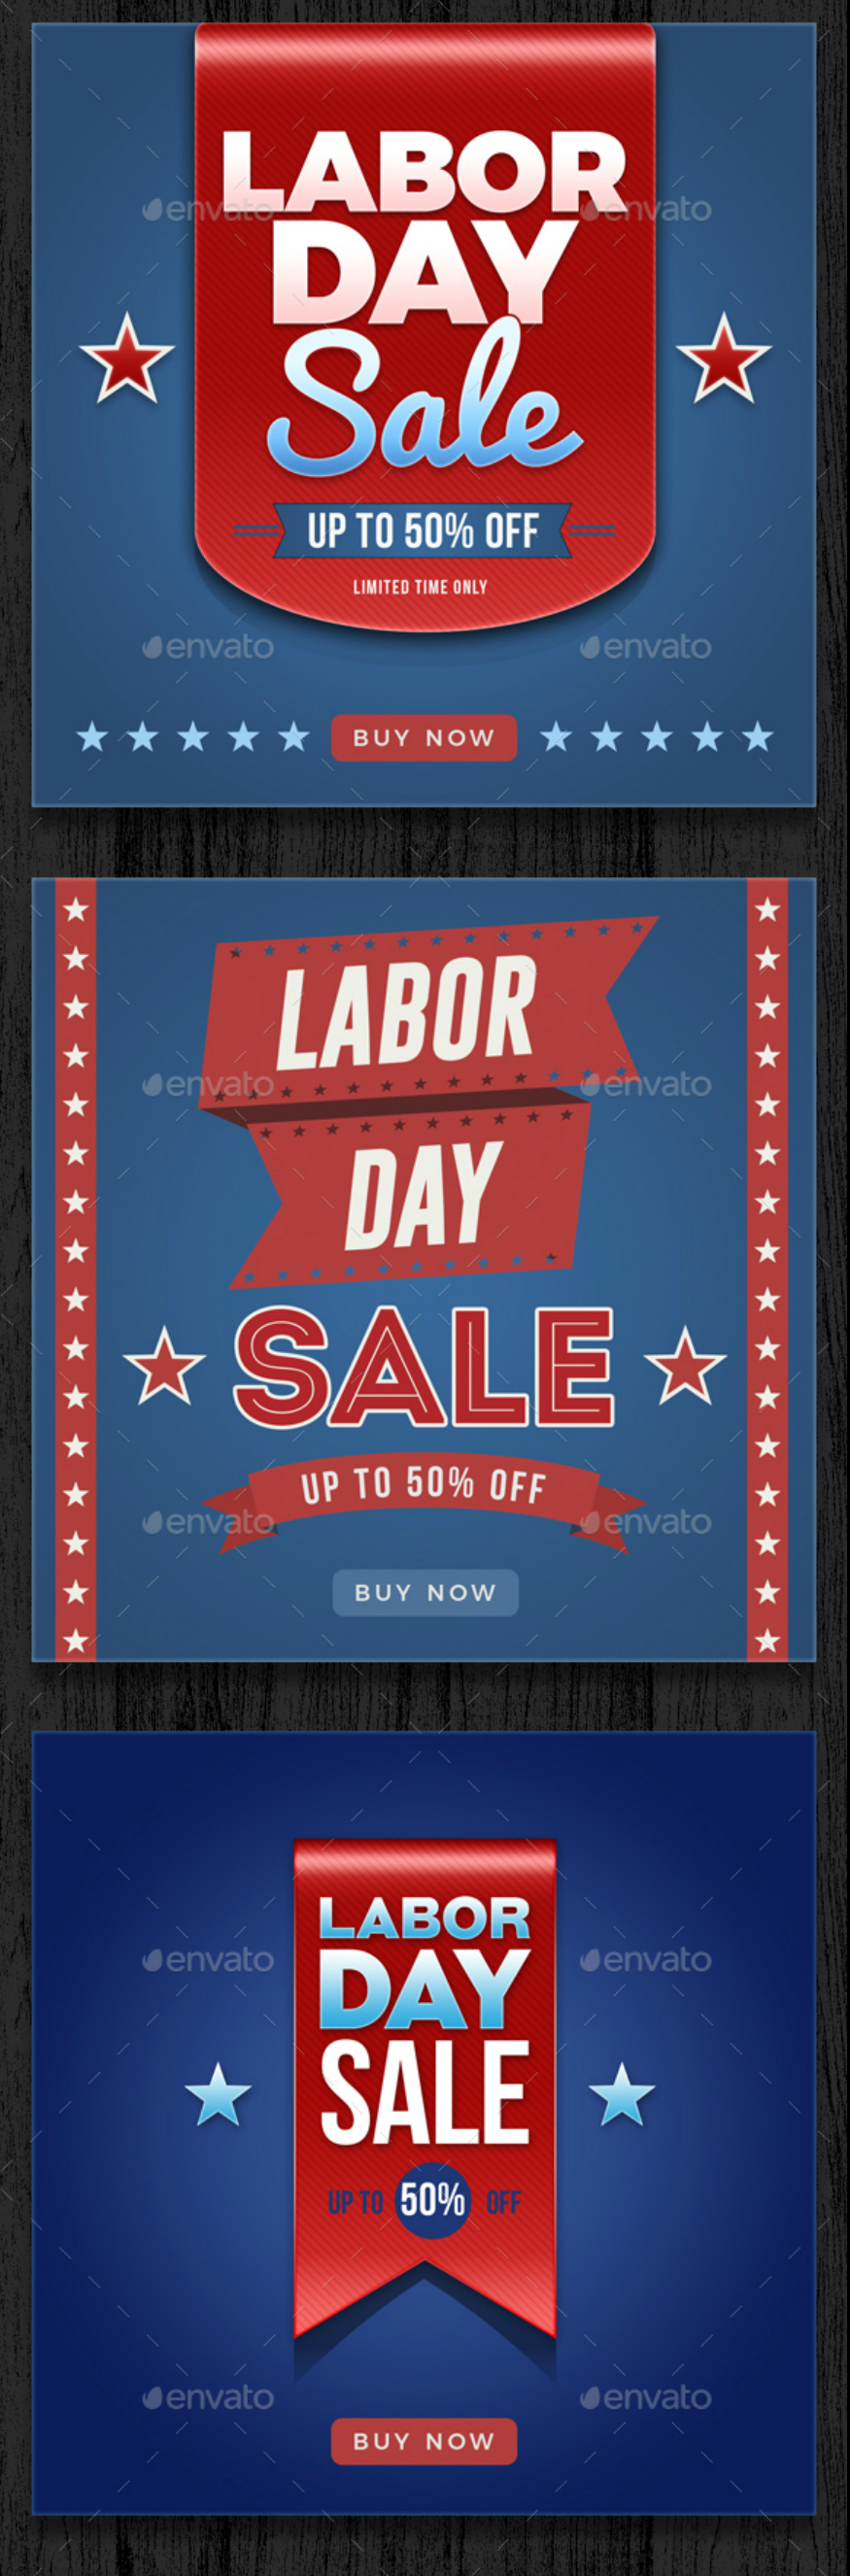 labor day sale banner set e1503559499469